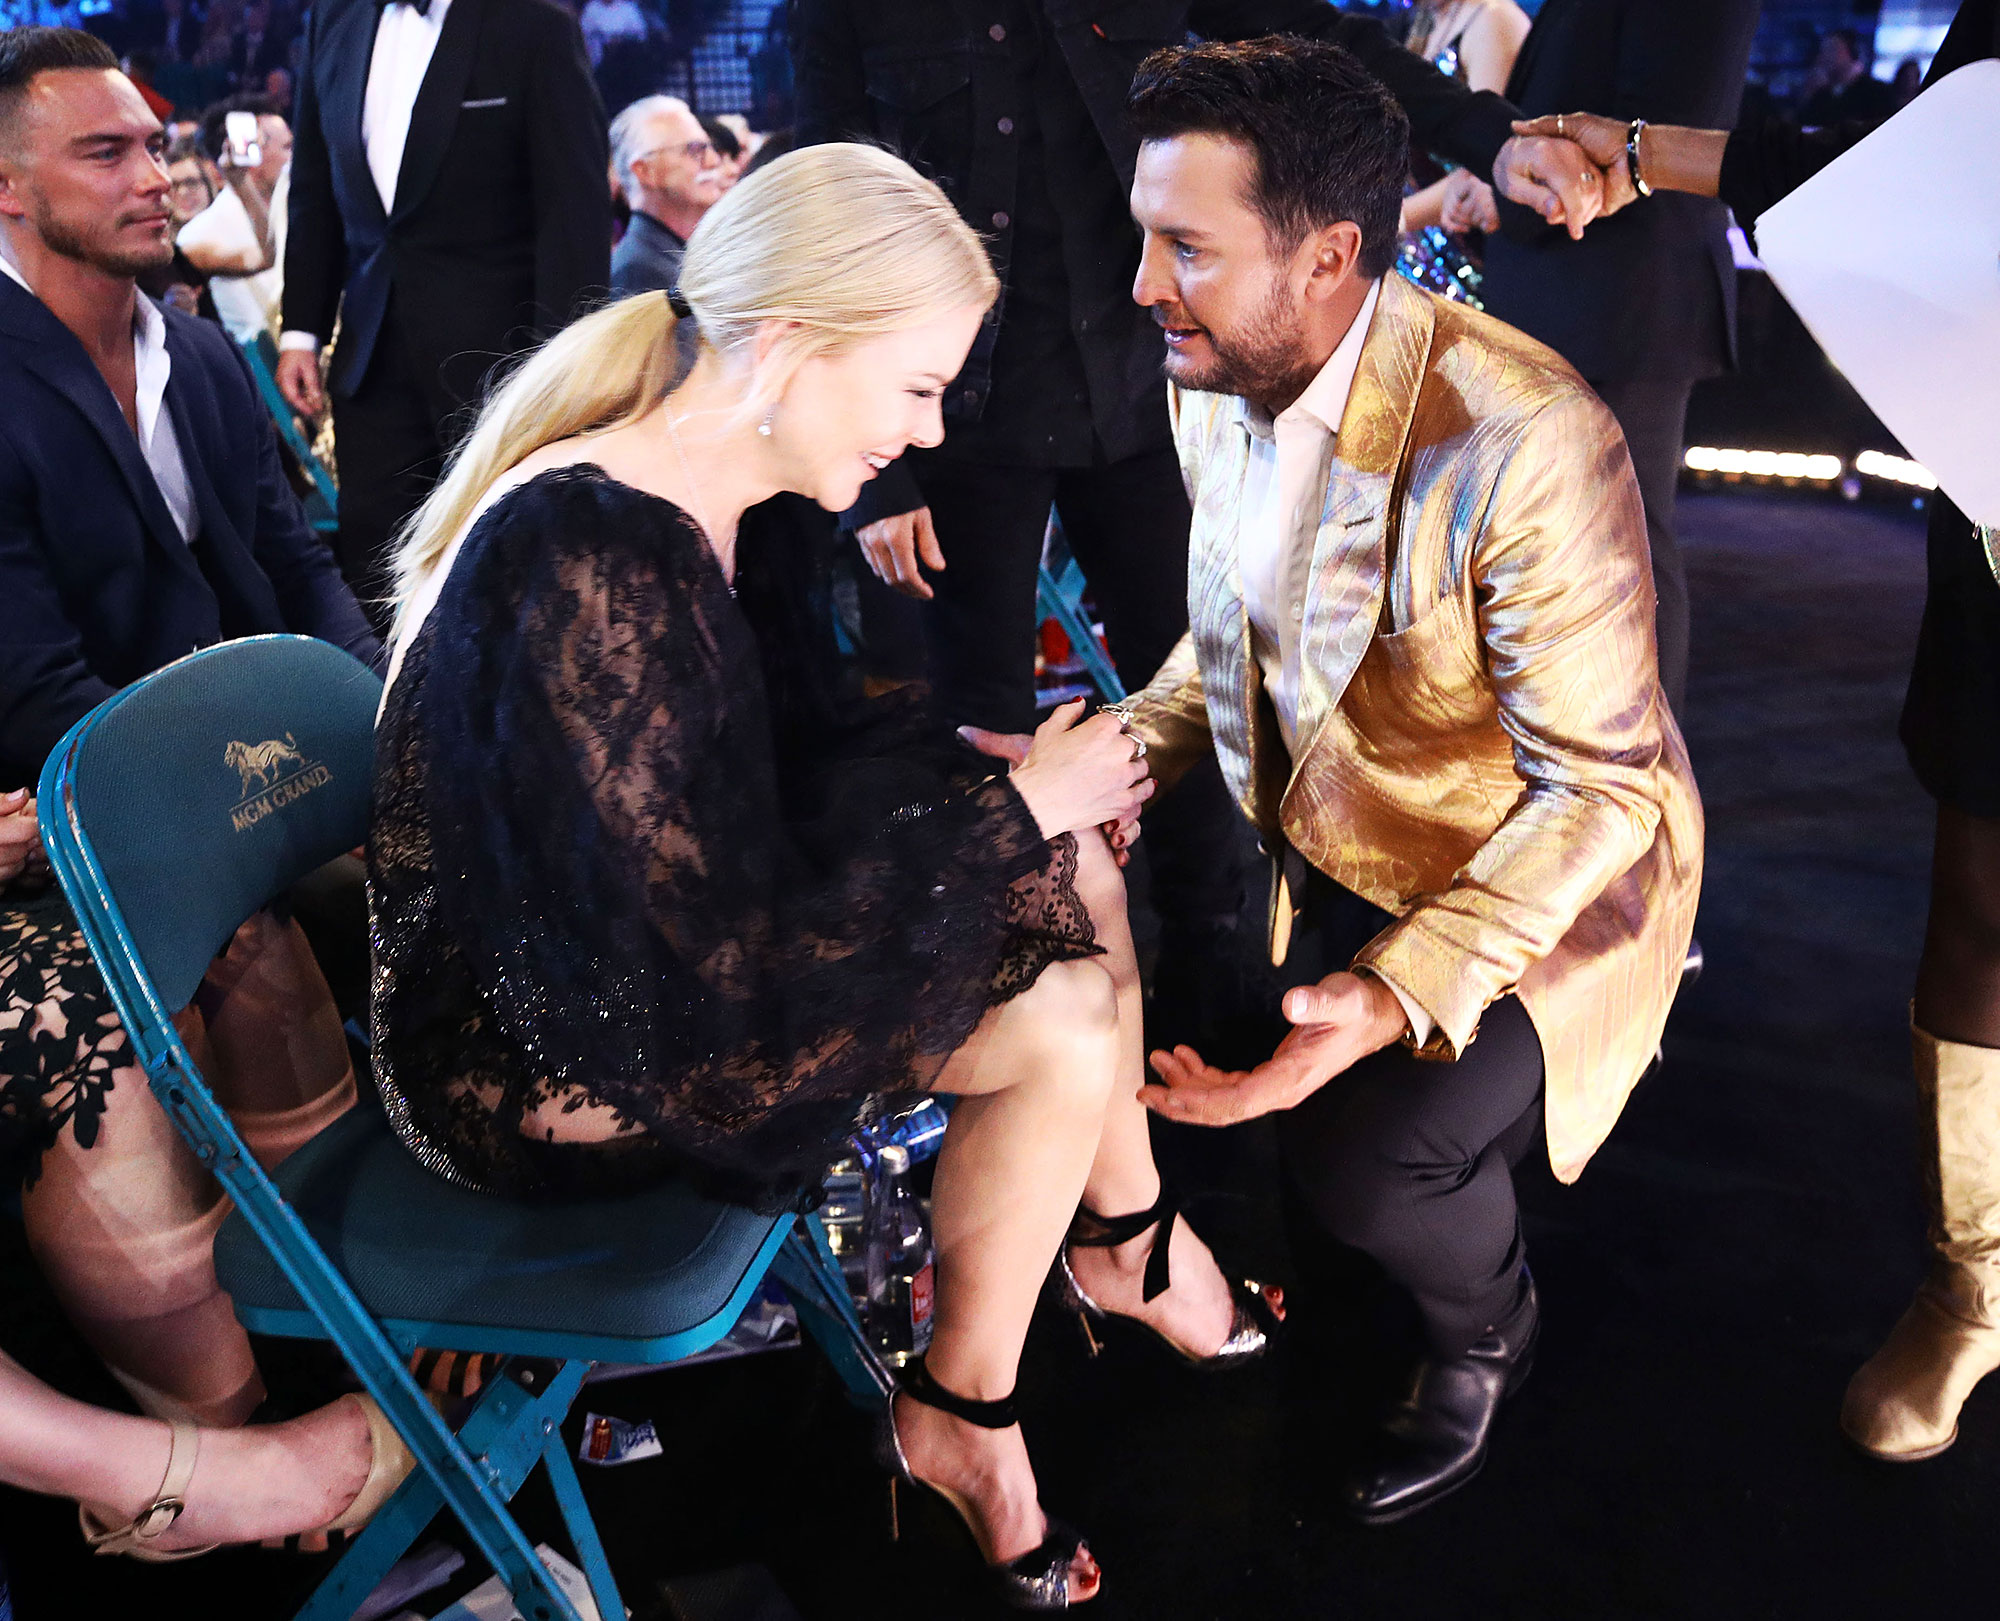 Inside ACM Awards 2019 Nicole Kidman Luke Bryan - Kidman couldn't contain her laughter while catching up with the American Idol judge.